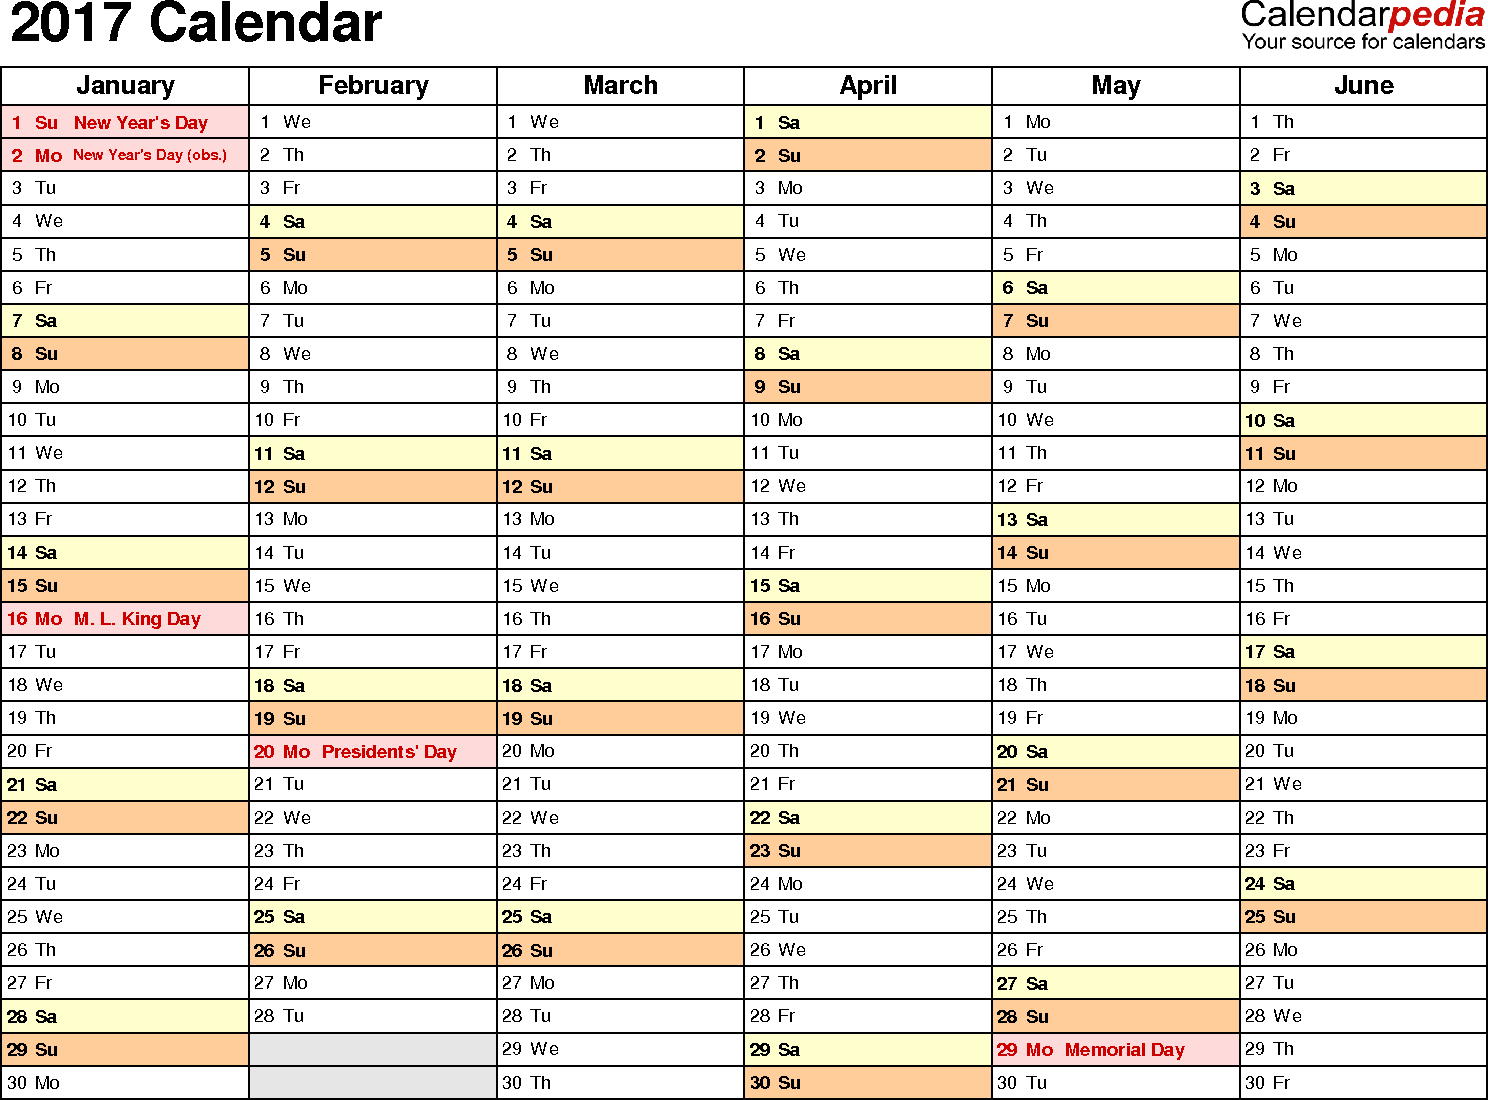 Ediblewildsus  Prepossessing  Calendar  Download  Free Printable Excel Templates Xls With Inspiring Template   Calendar For Excel Months Horizontally  Pages Landscape Orientation With Comely Hyperlinks Excel Also Export Table From Word To Excel In Addition Excel Data Analysis Correlation And Insert Calendar In Excel Cell As Well As Excel Vba And Or Additionally Excel Scatter Plots From Calendarpediacom With Ediblewildsus  Inspiring  Calendar  Download  Free Printable Excel Templates Xls With Comely Template   Calendar For Excel Months Horizontally  Pages Landscape Orientation And Prepossessing Hyperlinks Excel Also Export Table From Word To Excel In Addition Excel Data Analysis Correlation From Calendarpediacom